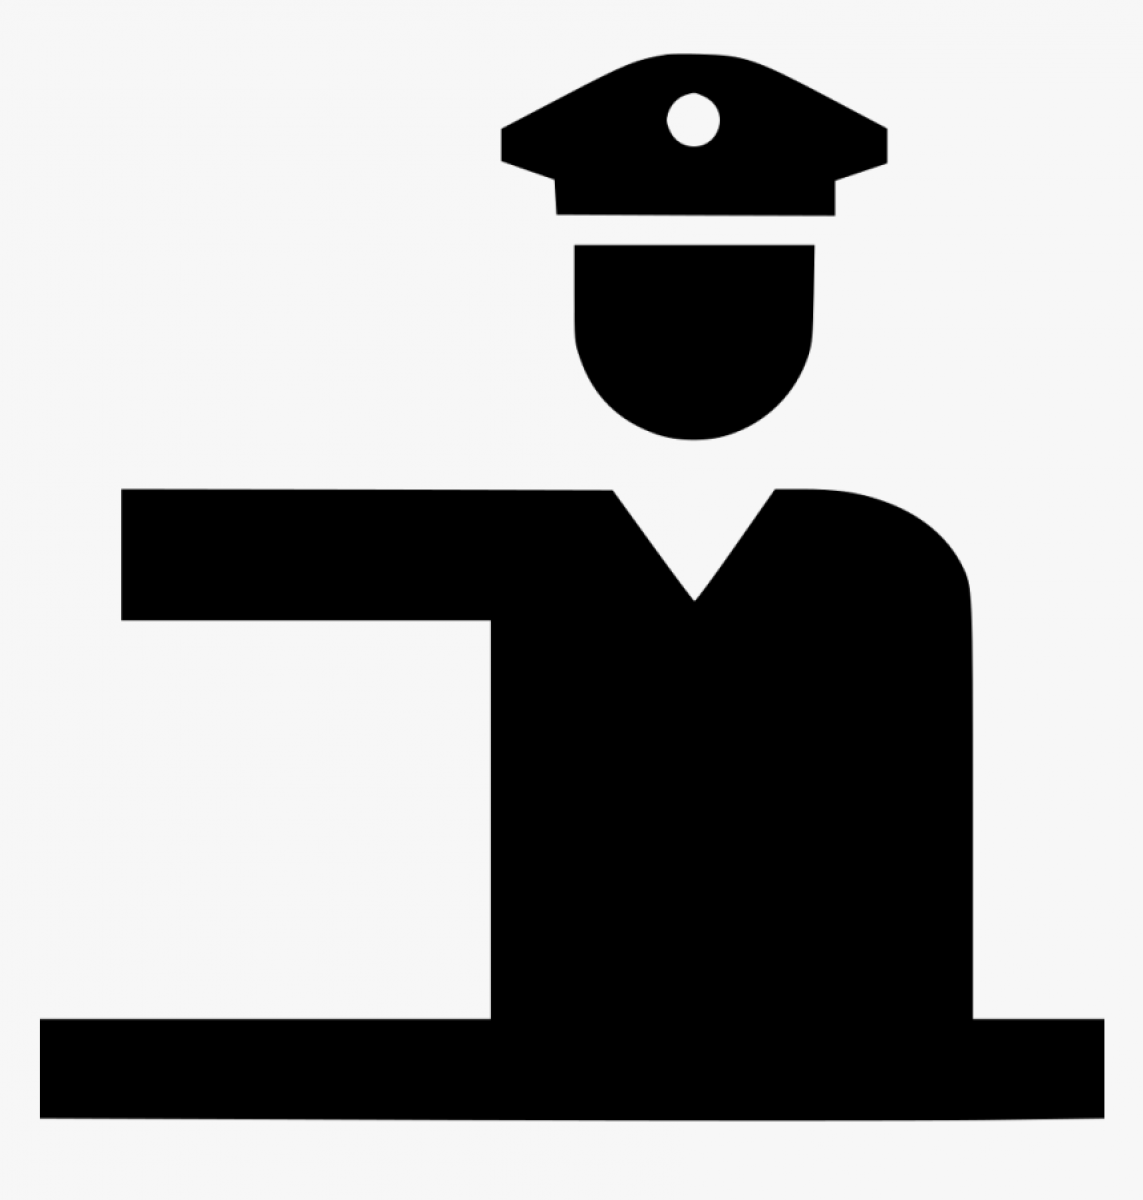 7566-245-2453779_police-png-download-security-check-point-logo-transparent